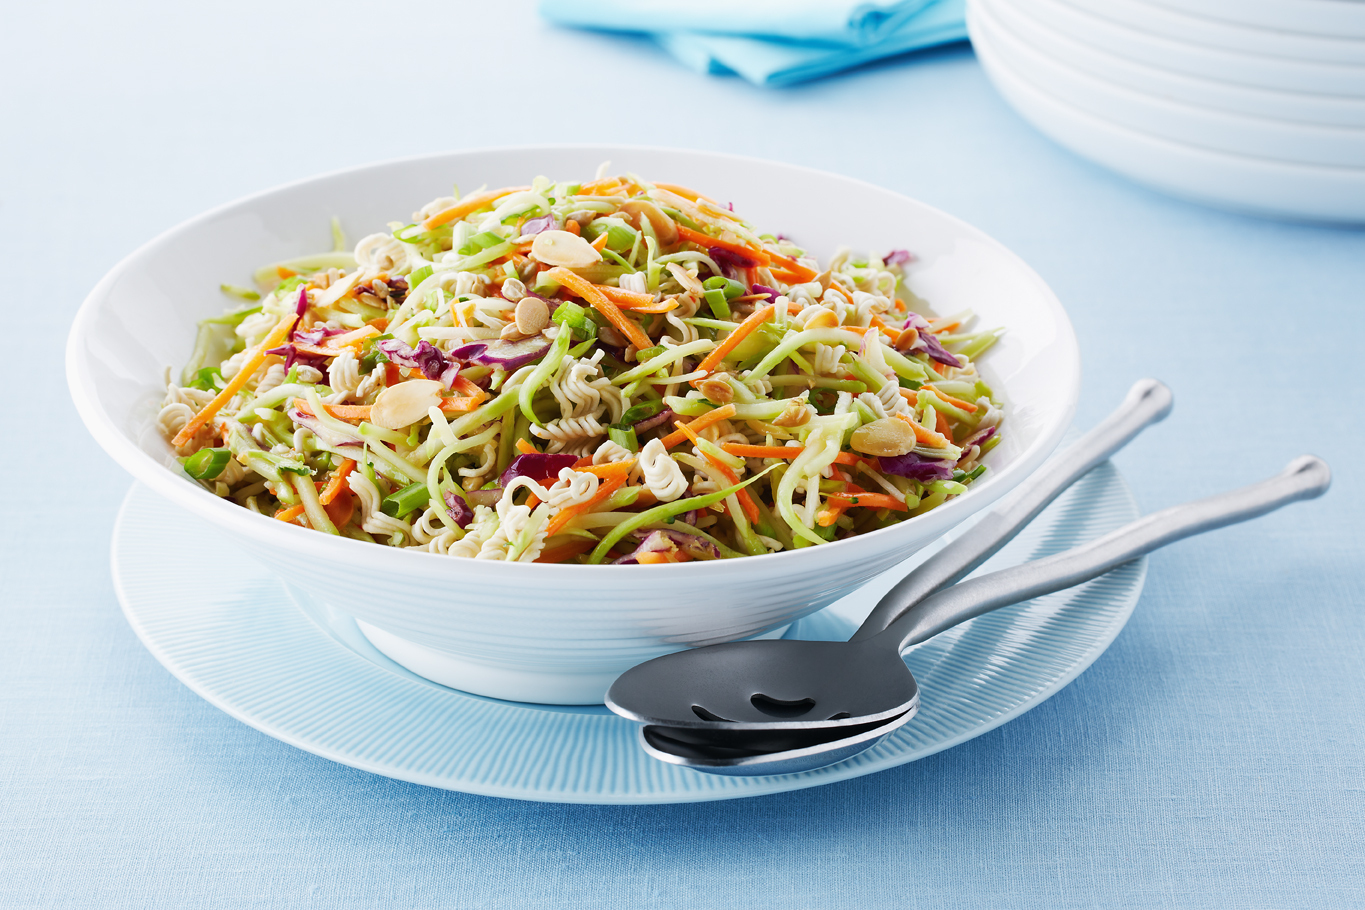 Crunchy Asian Broccoli Coleslaw Recipe